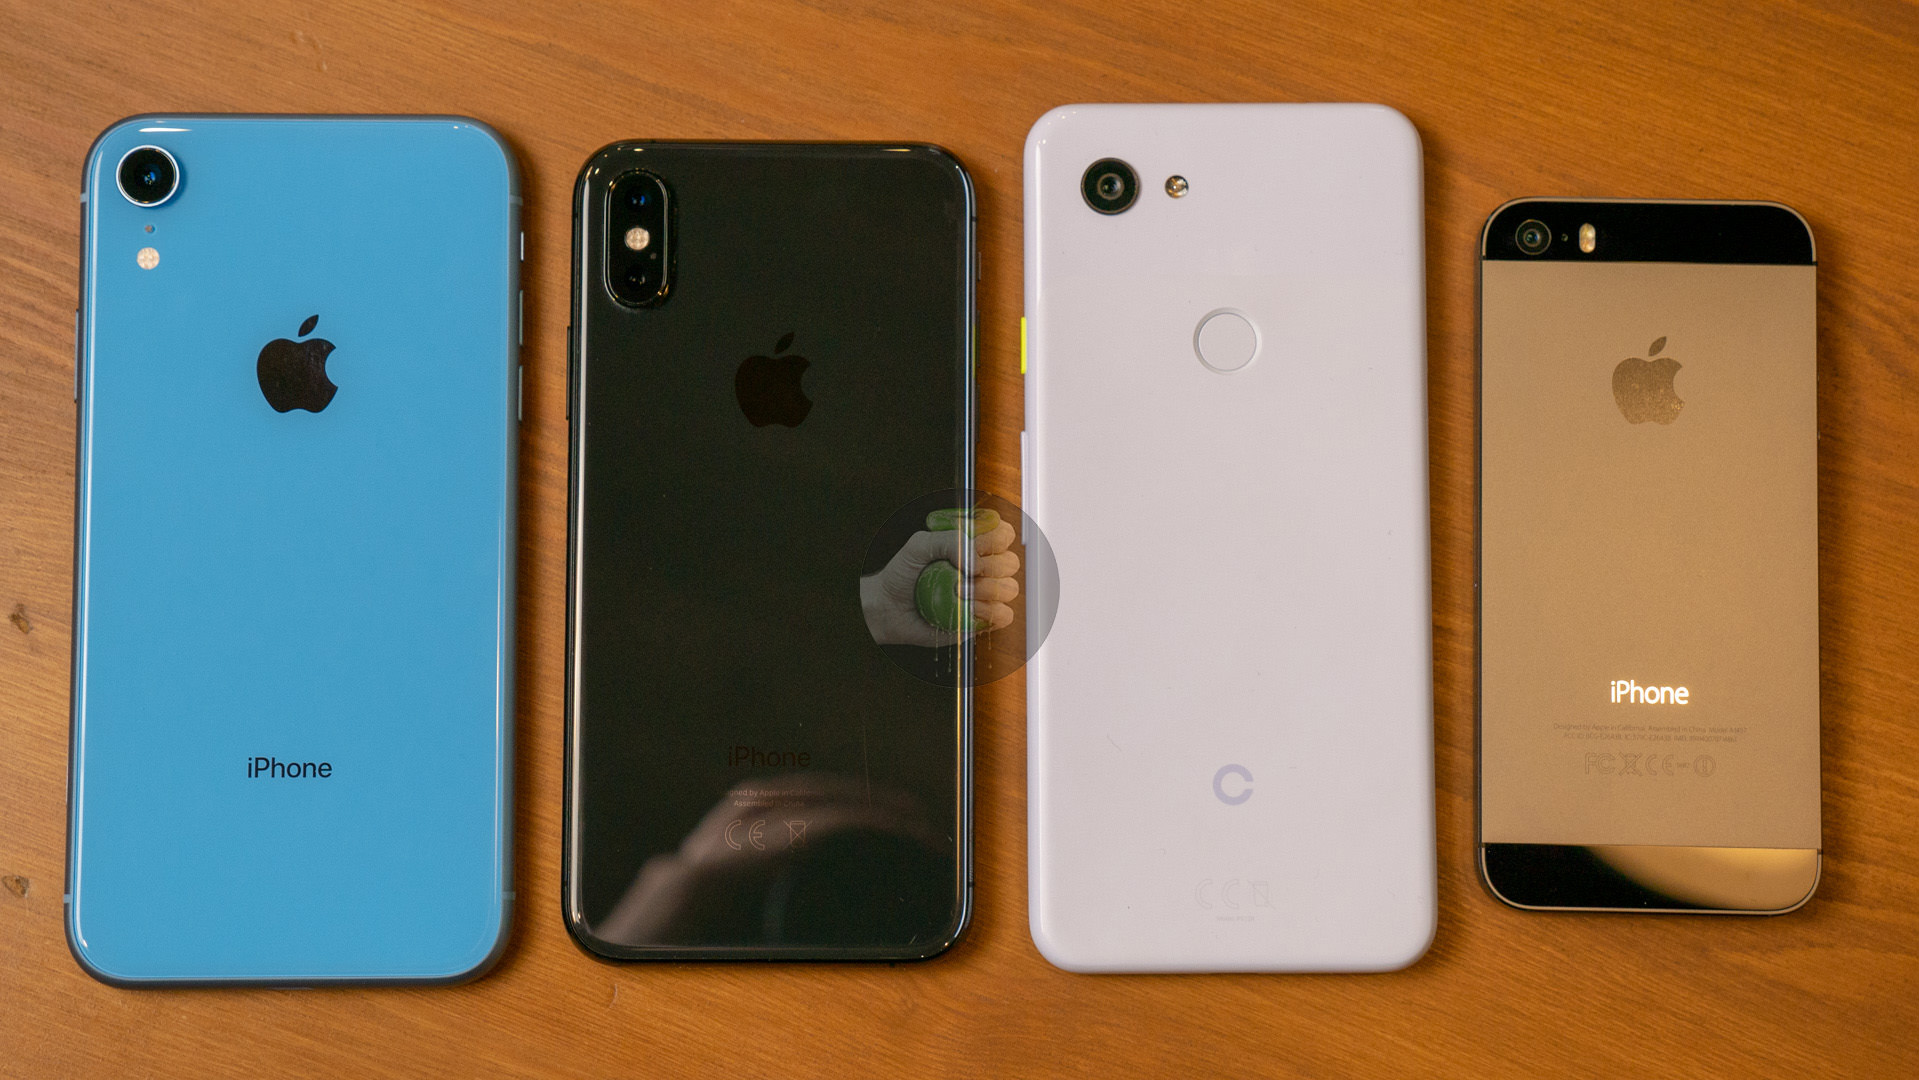 iPhone-Xr-iPhone-Xs-Pixel-3-Lite-iPhone-5S